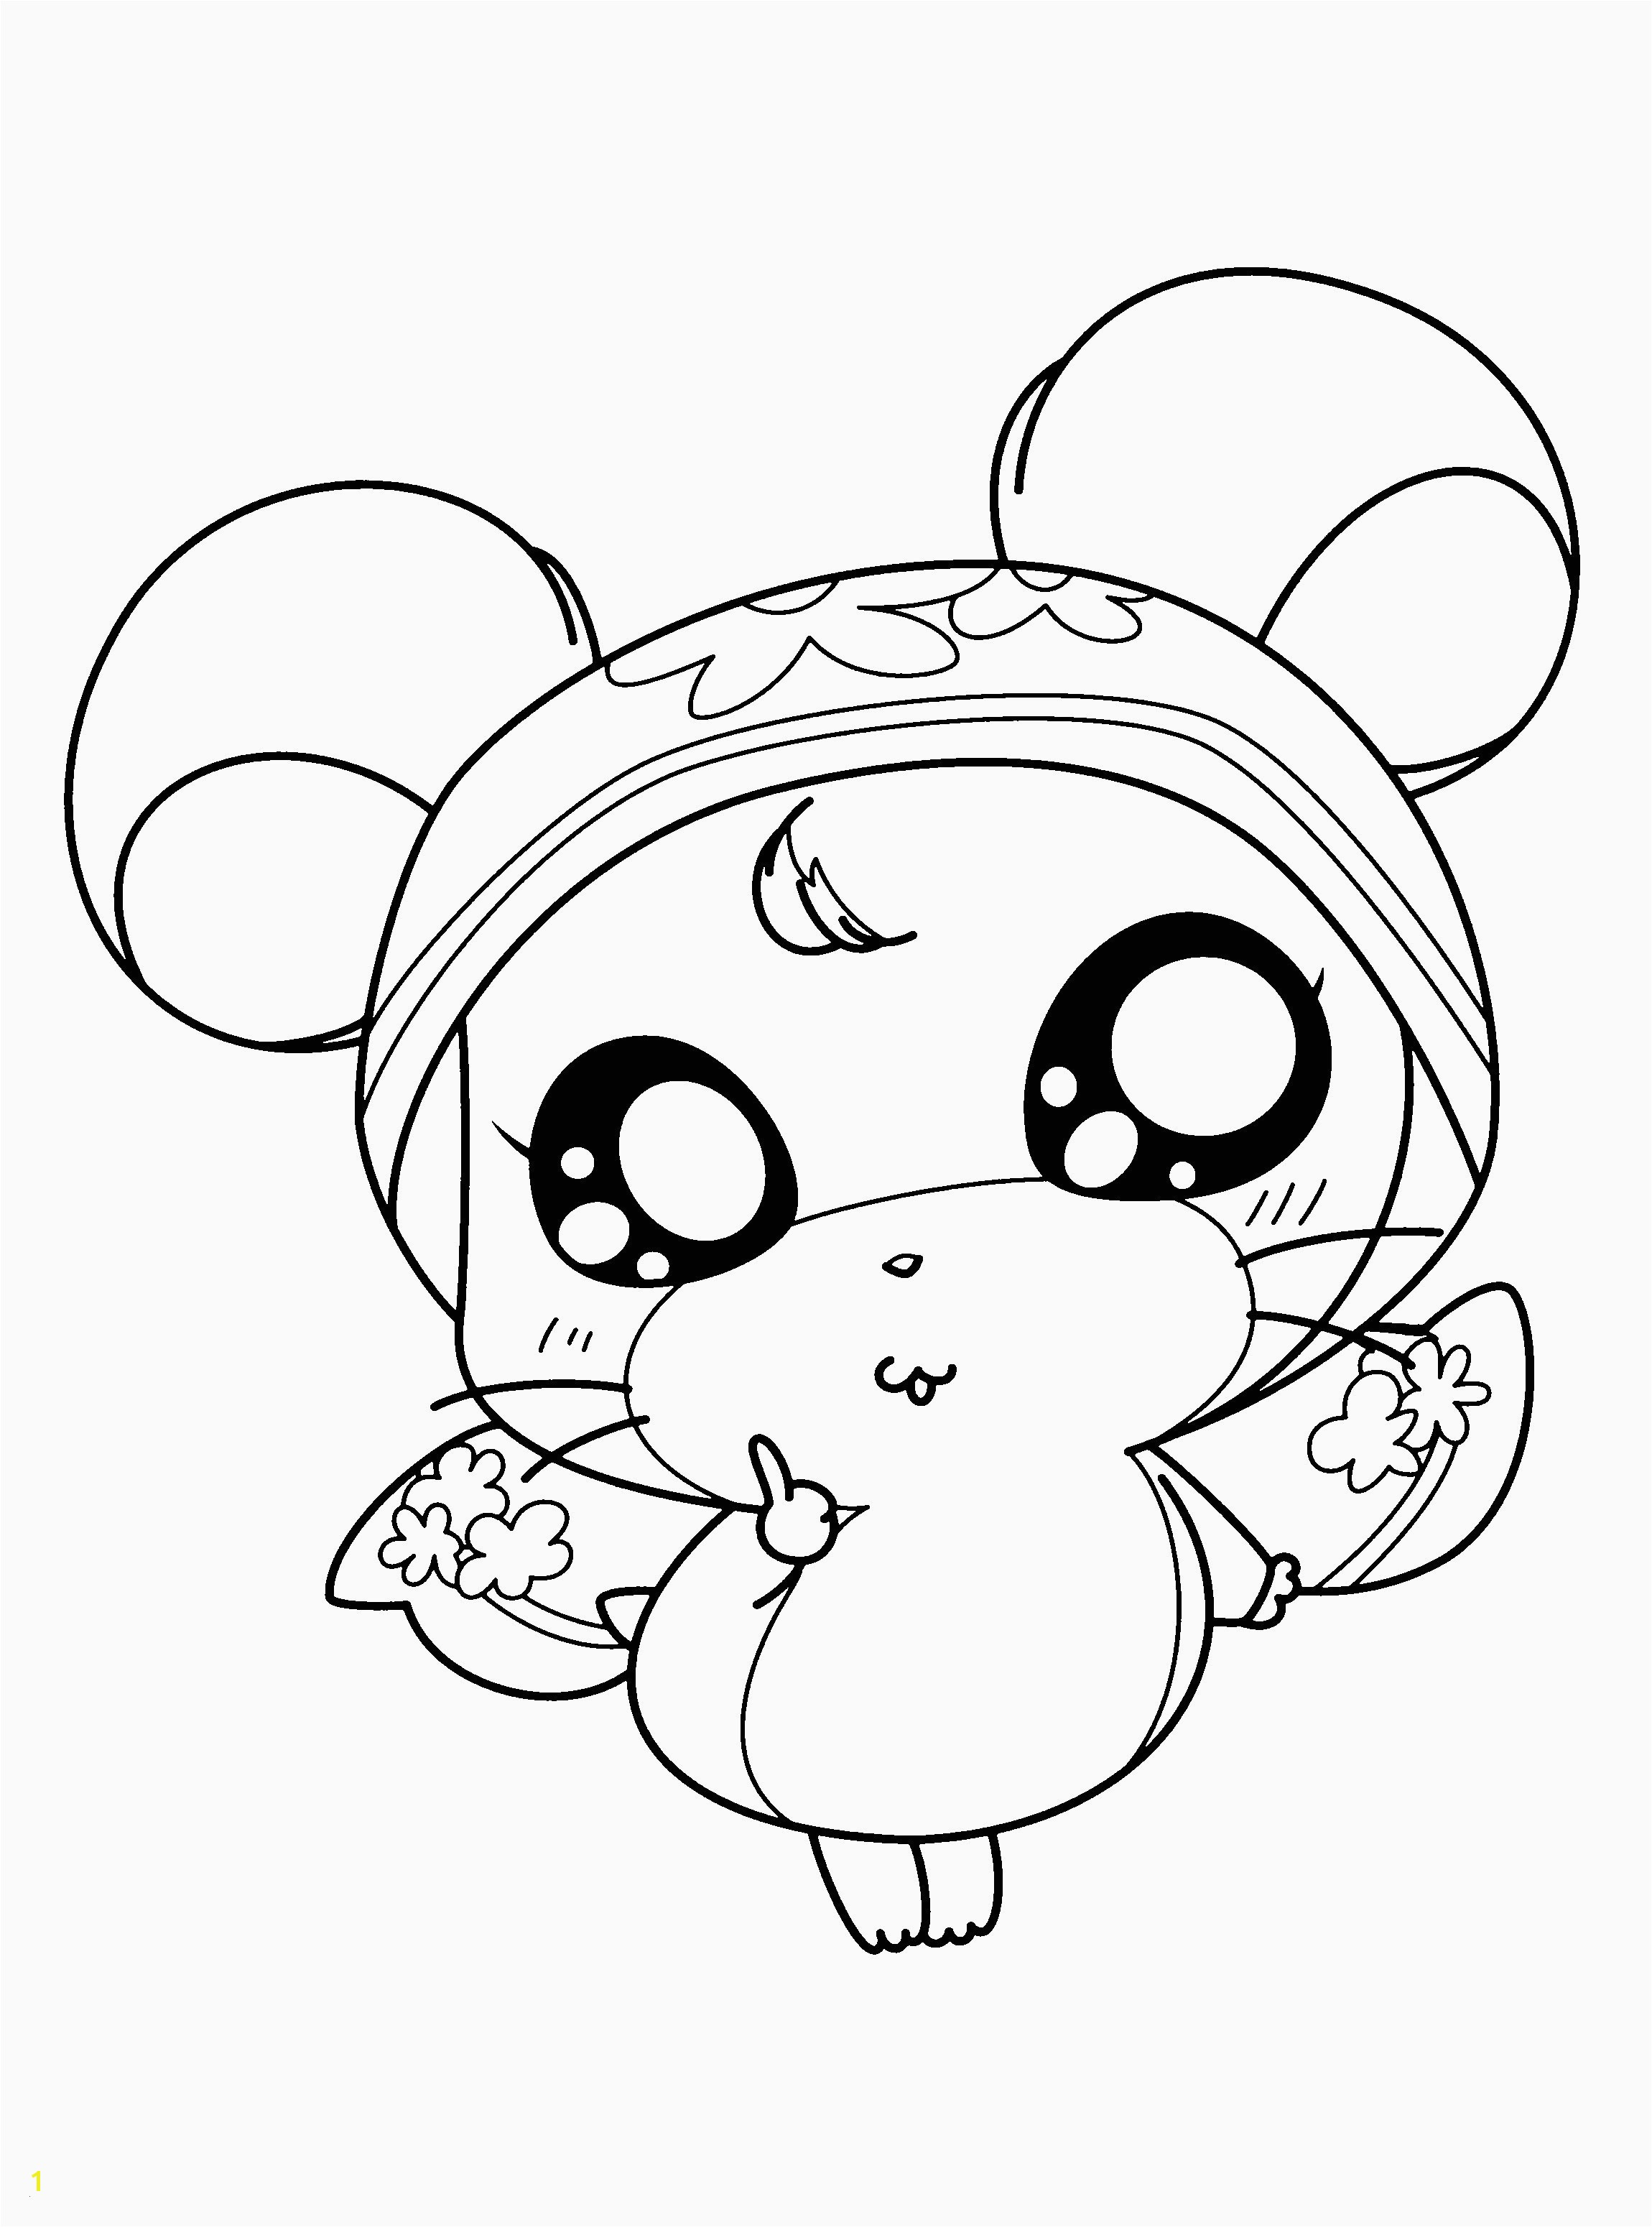 Yoda Head Coloring Page Coloring Pages Pokemon Coloring Chrsistmas